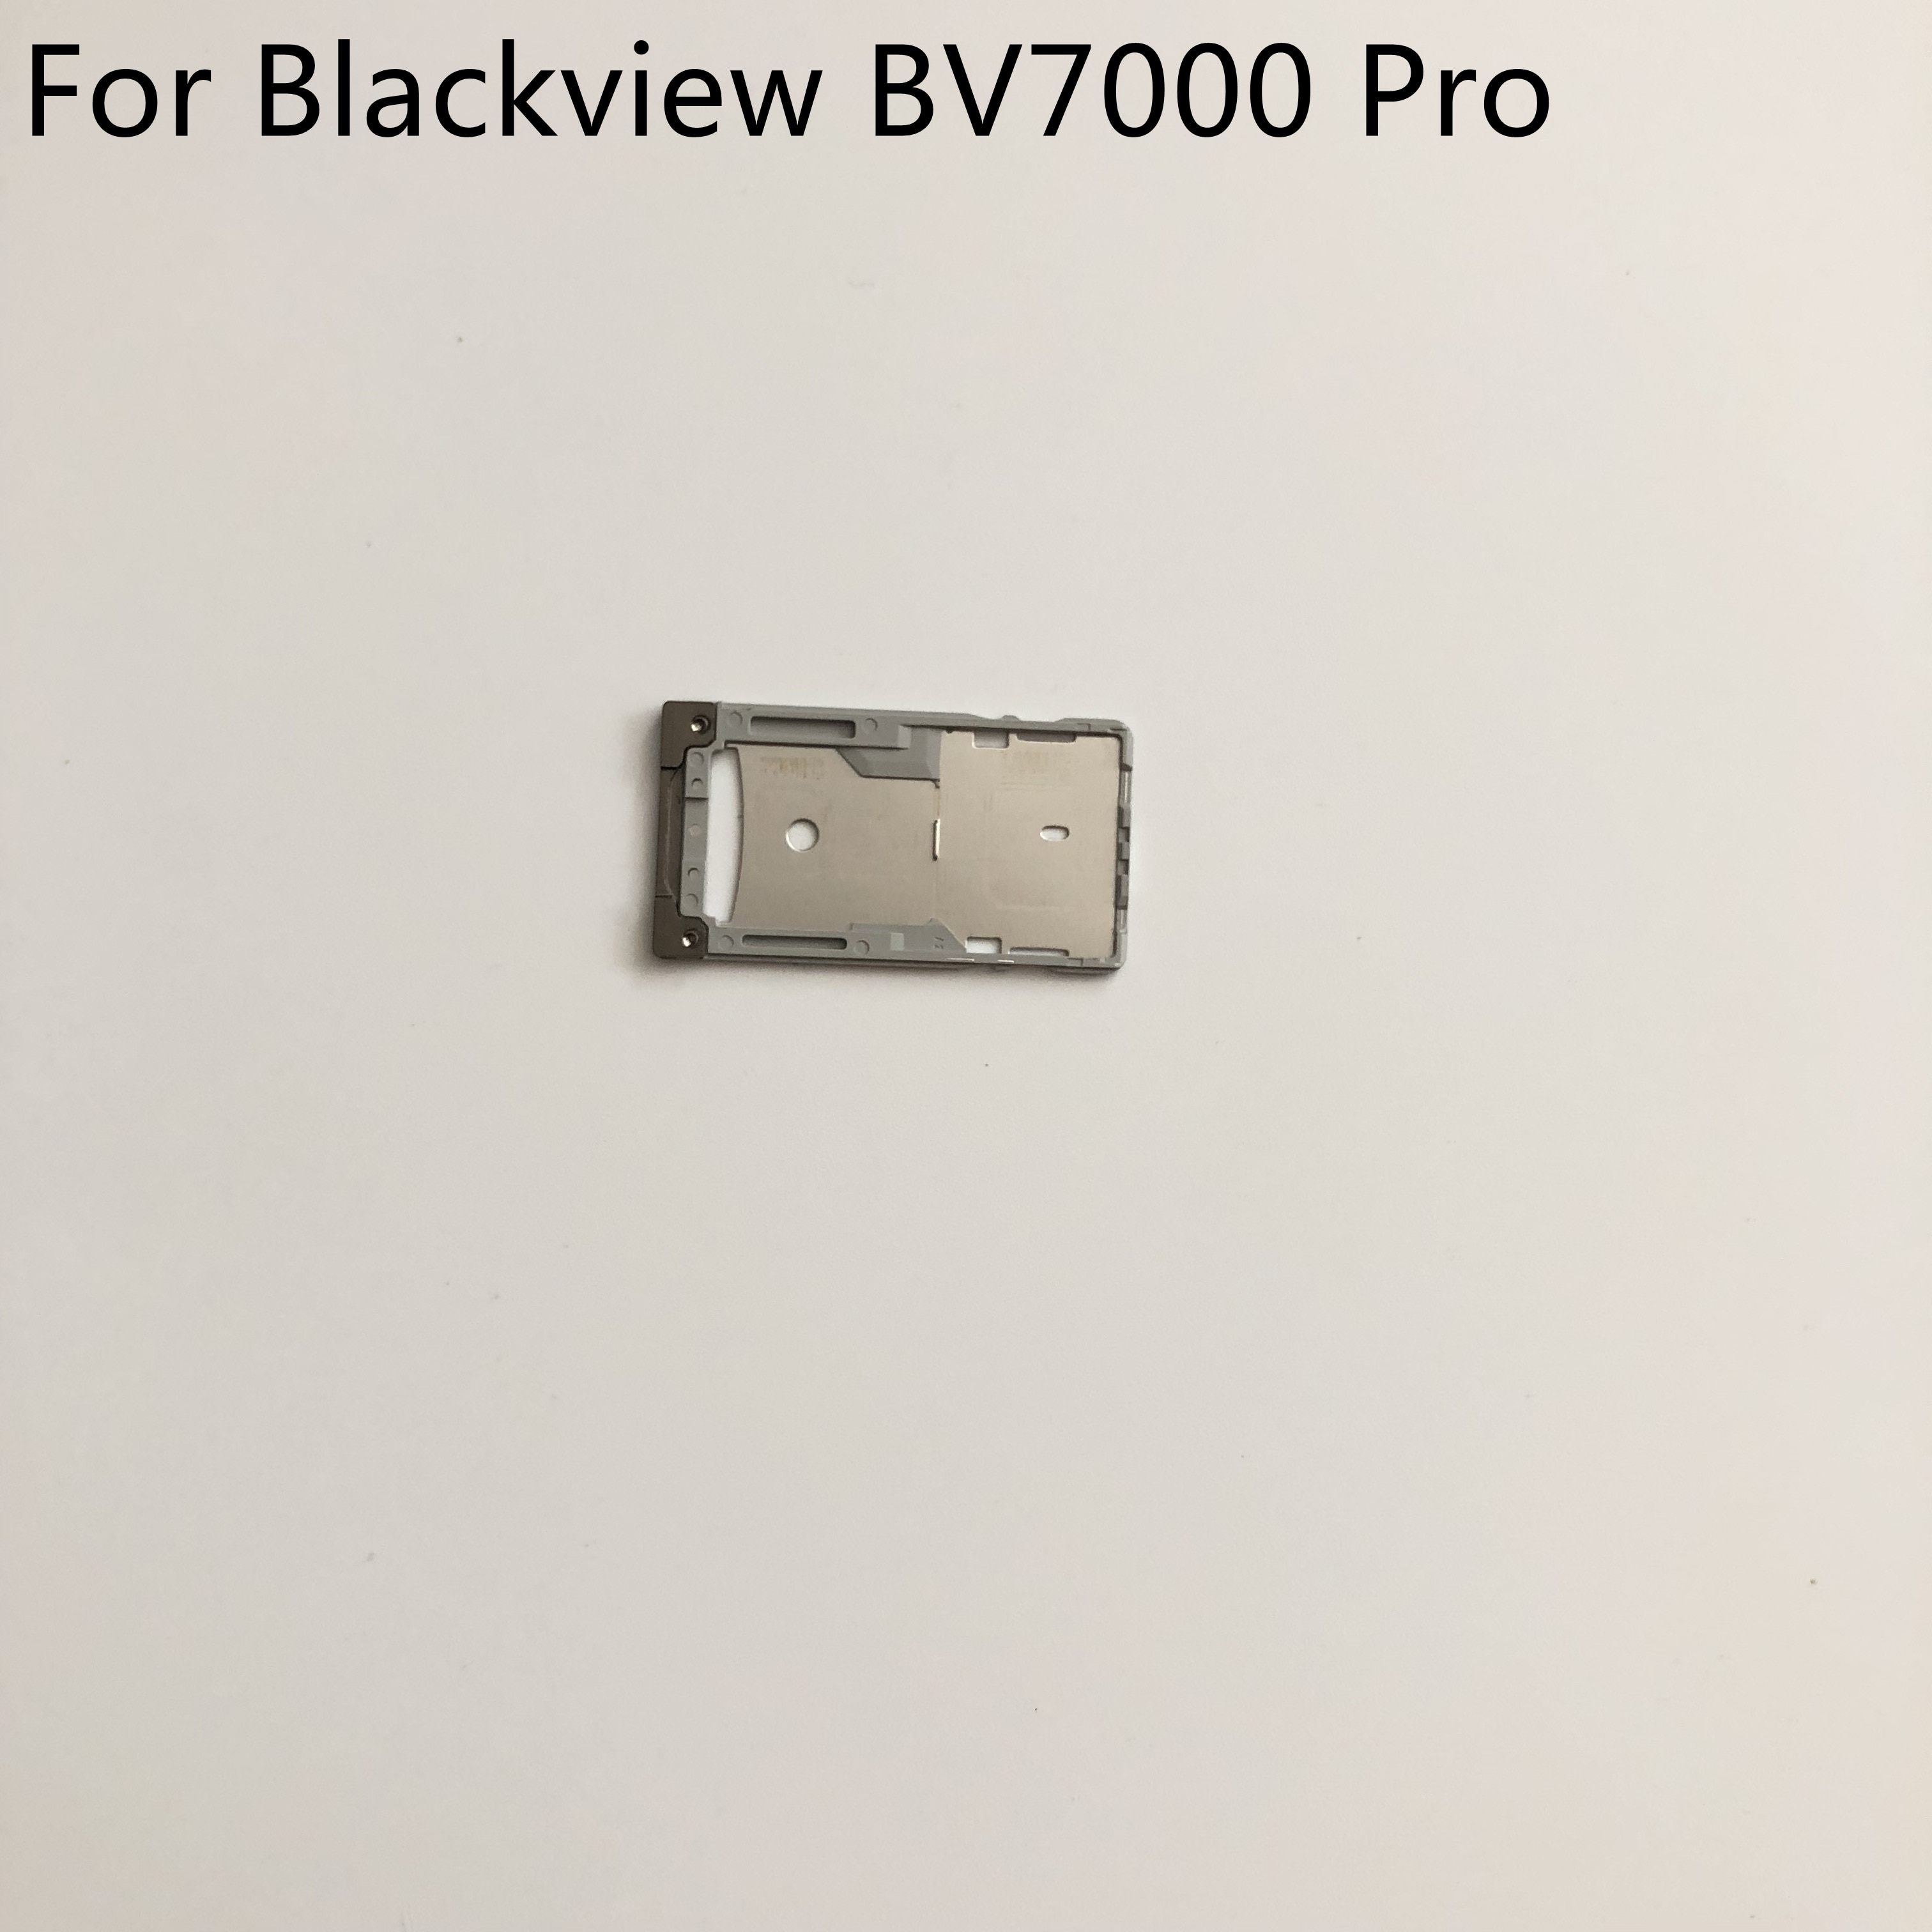 Фото - New Sim Card Holder Tray Card Slot For Blackview BV7000 Pro MTK6750 Octa Core 5.0 inch 1920x1080 +tracking number new sim card holder tray card slot replacement for oukitel k6000 plus mtk6750t octa core 5 5 fhd 1920x1080